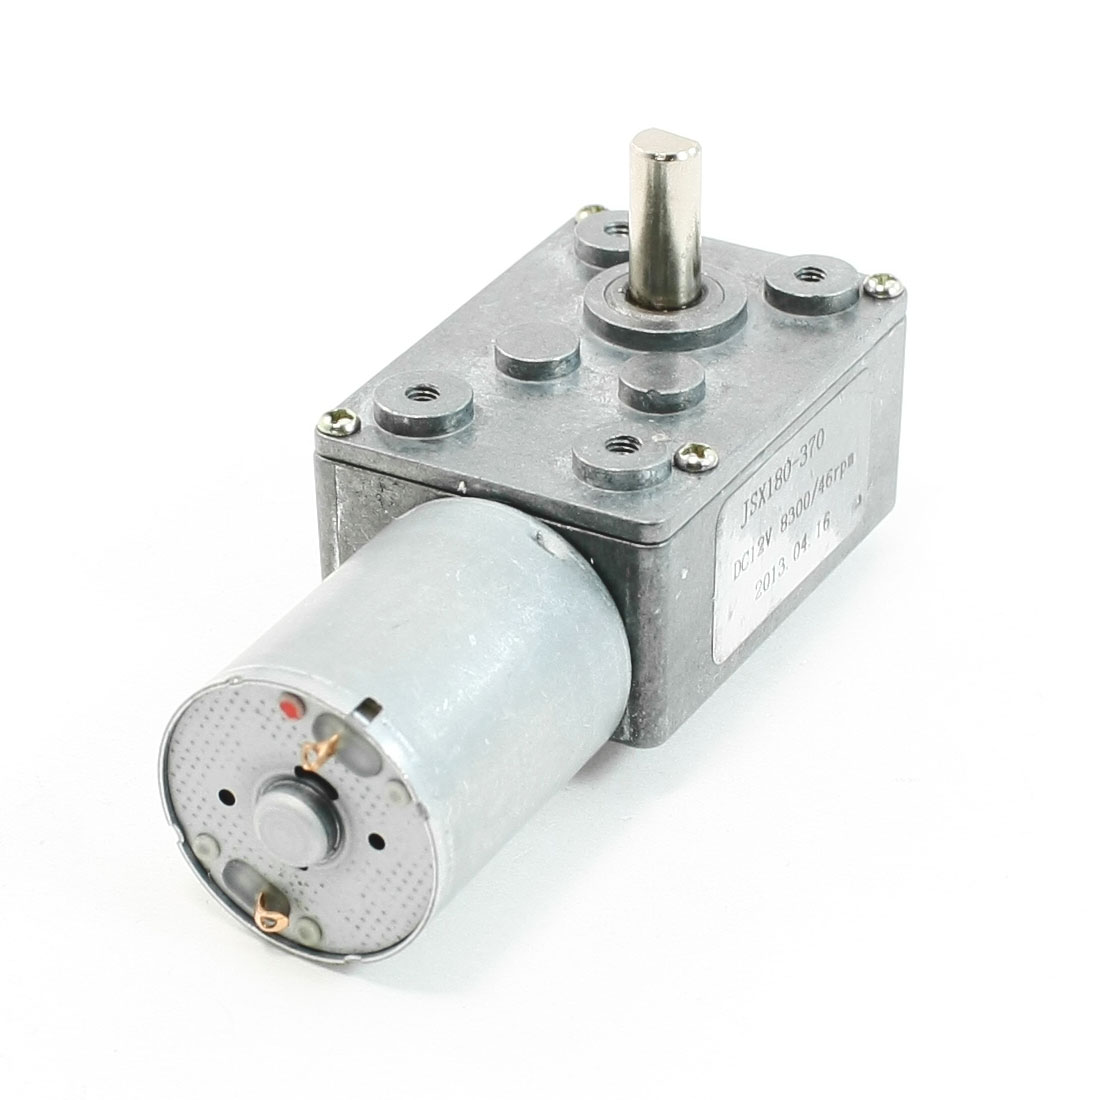 DC 12V 8300/46RPM Output Speed 2 Terminals Connecting 6mm Drive Shaft Geared Motor